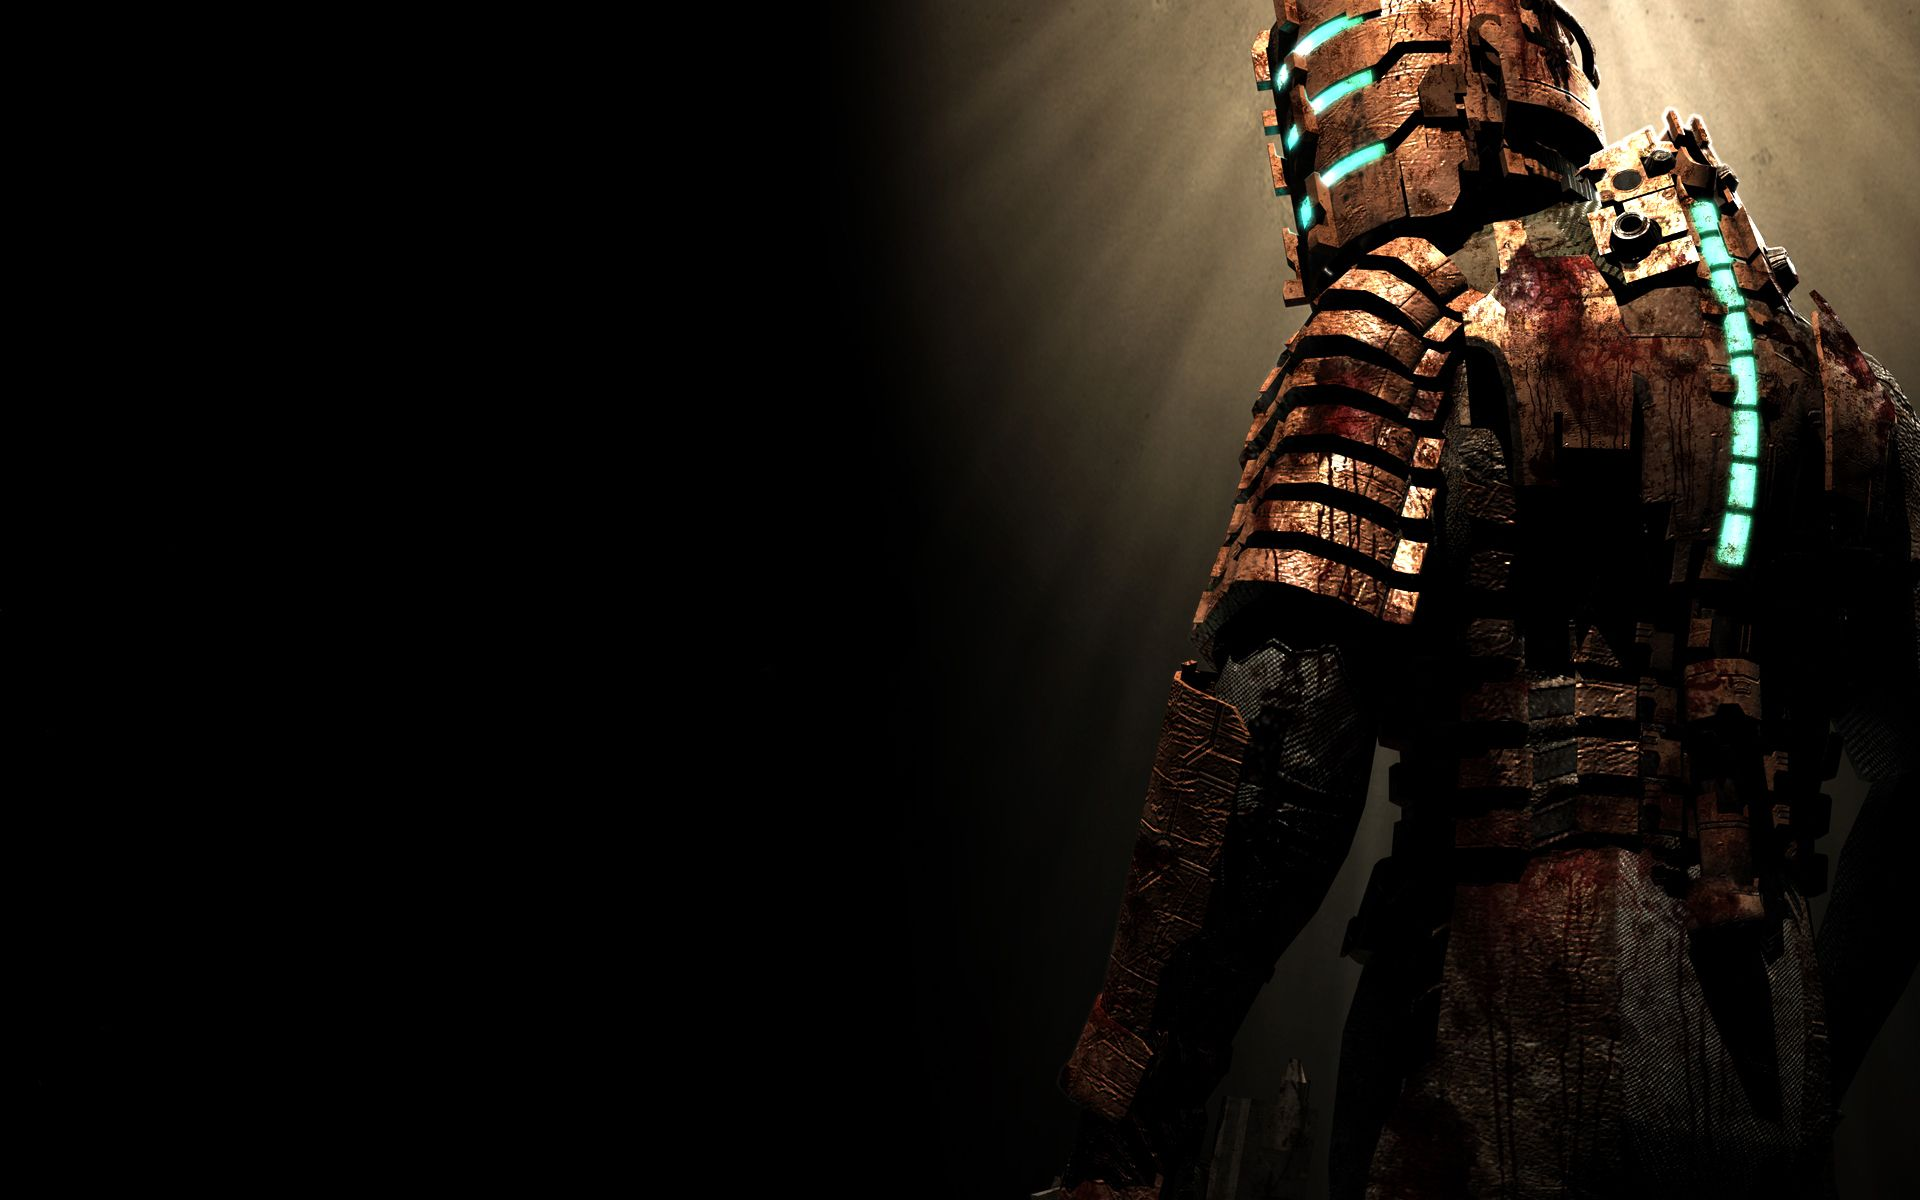 Dead Space 2 Wallpaper HD HD Wallpaper Games Wallpapers 1920x1200